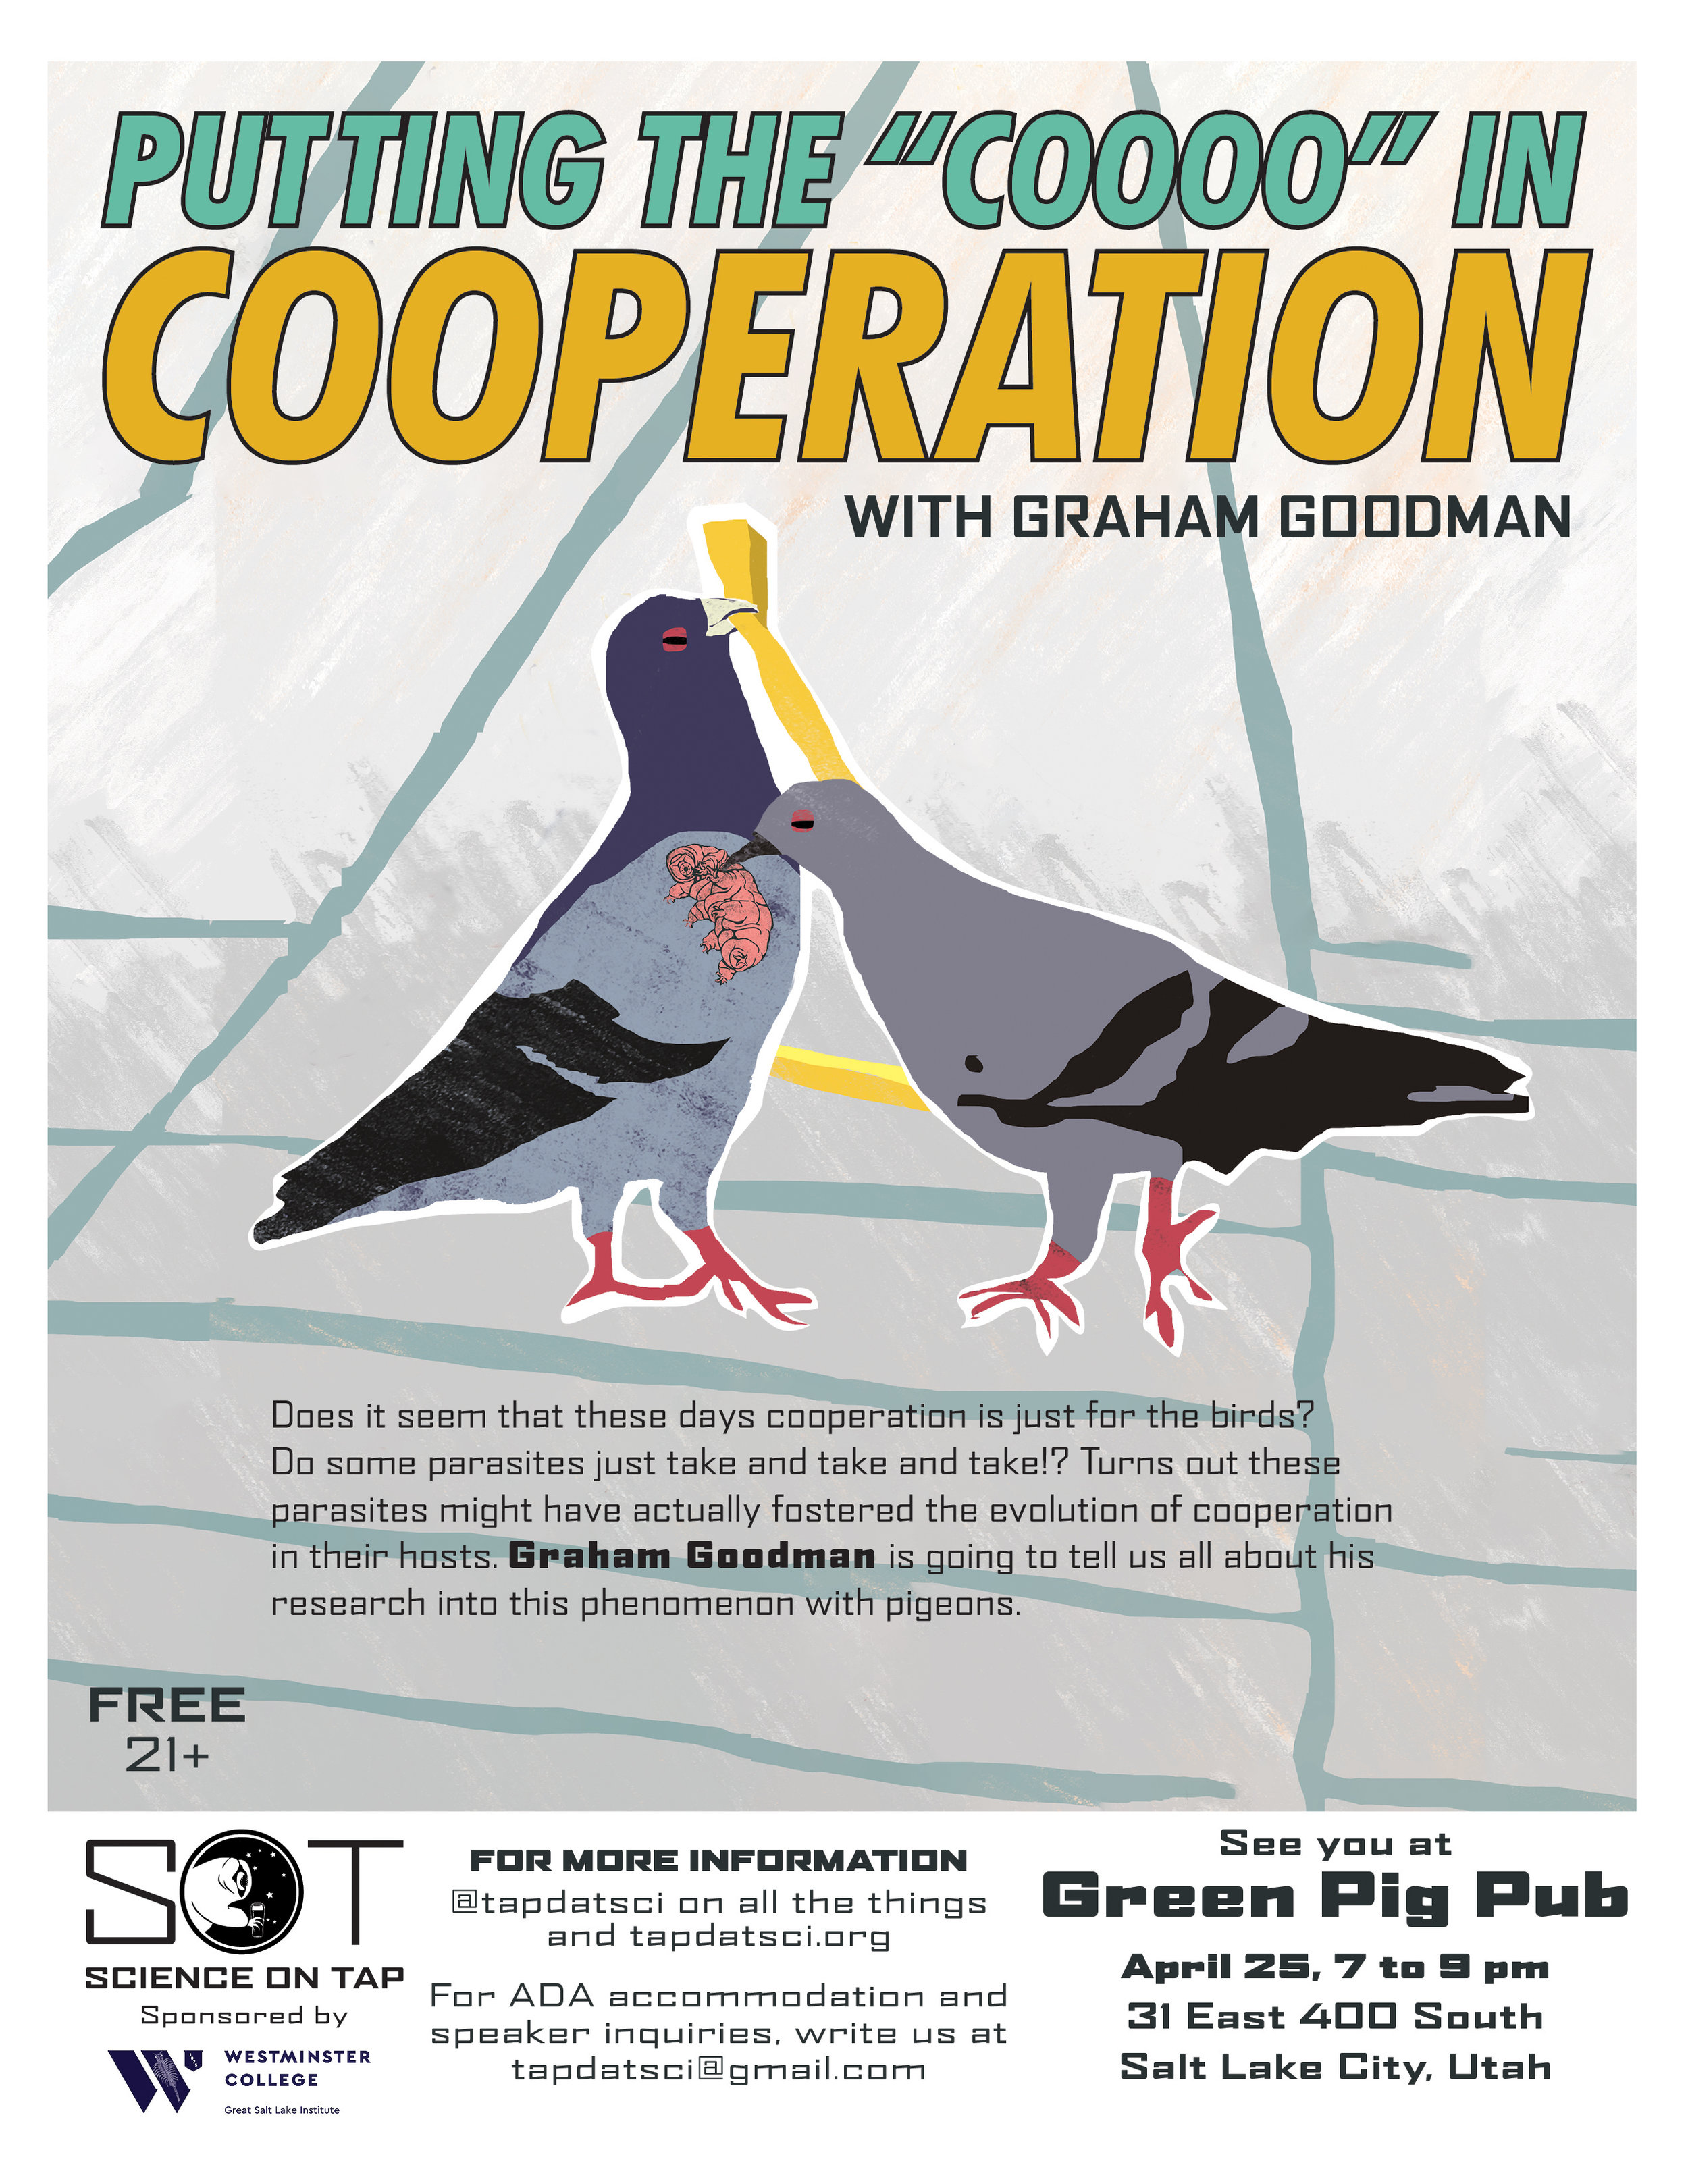 Putting the COOOO in Cooperation   Graham Goodman  April 25, 2019